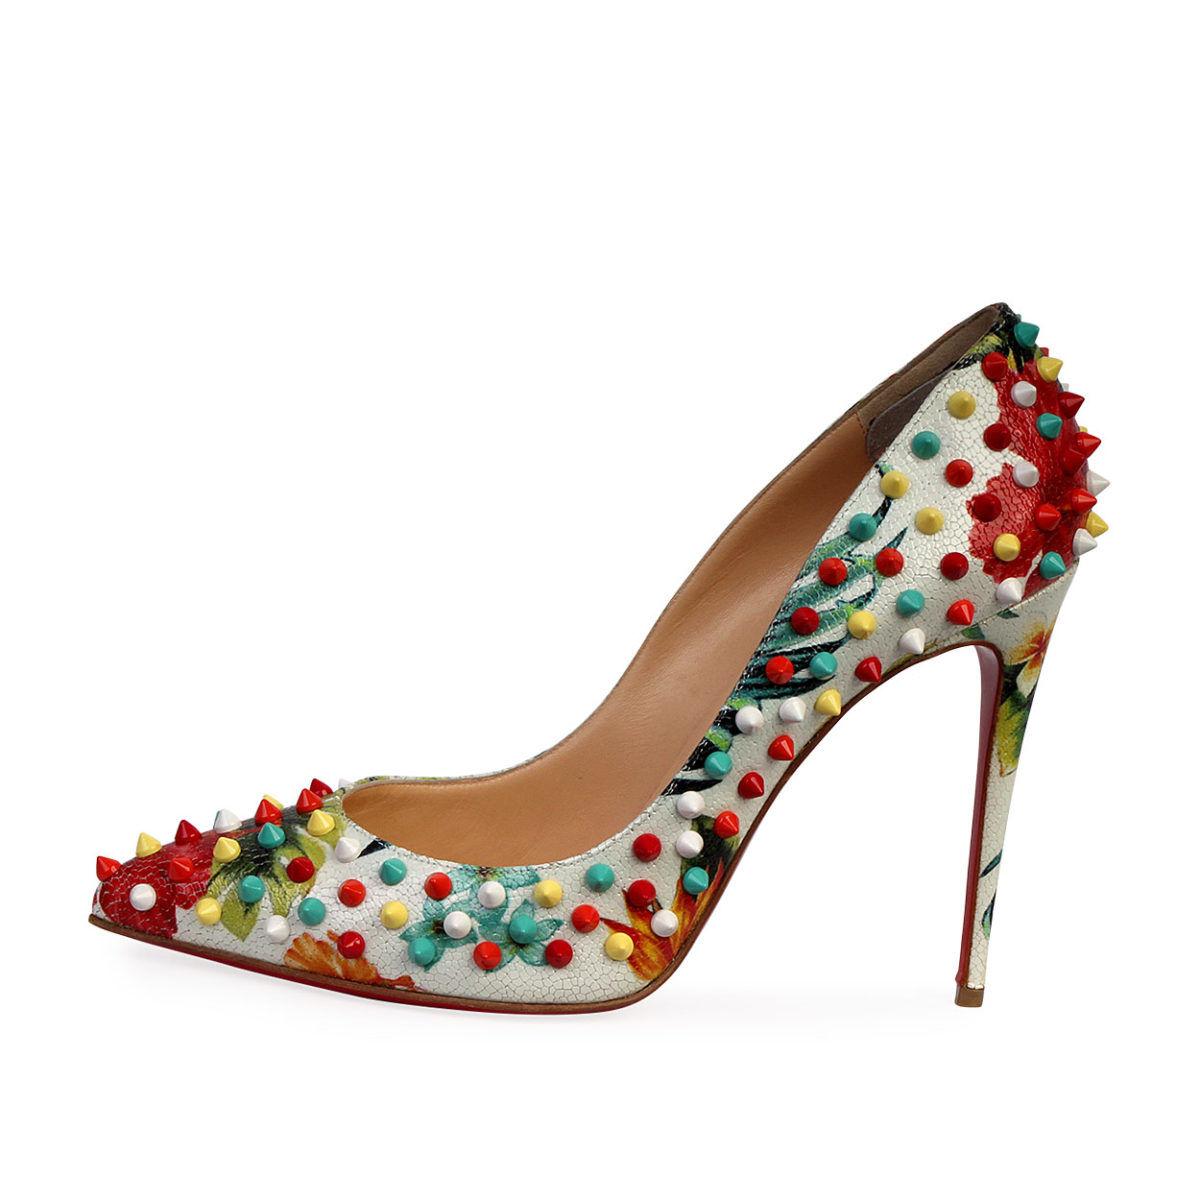 promo code 15a10 ea931 CHRISTIAN LOUBOUTIN Crackled Hawaiian Follies Spikes 120 Pumps White/Multi  - S: 40 (6.5)